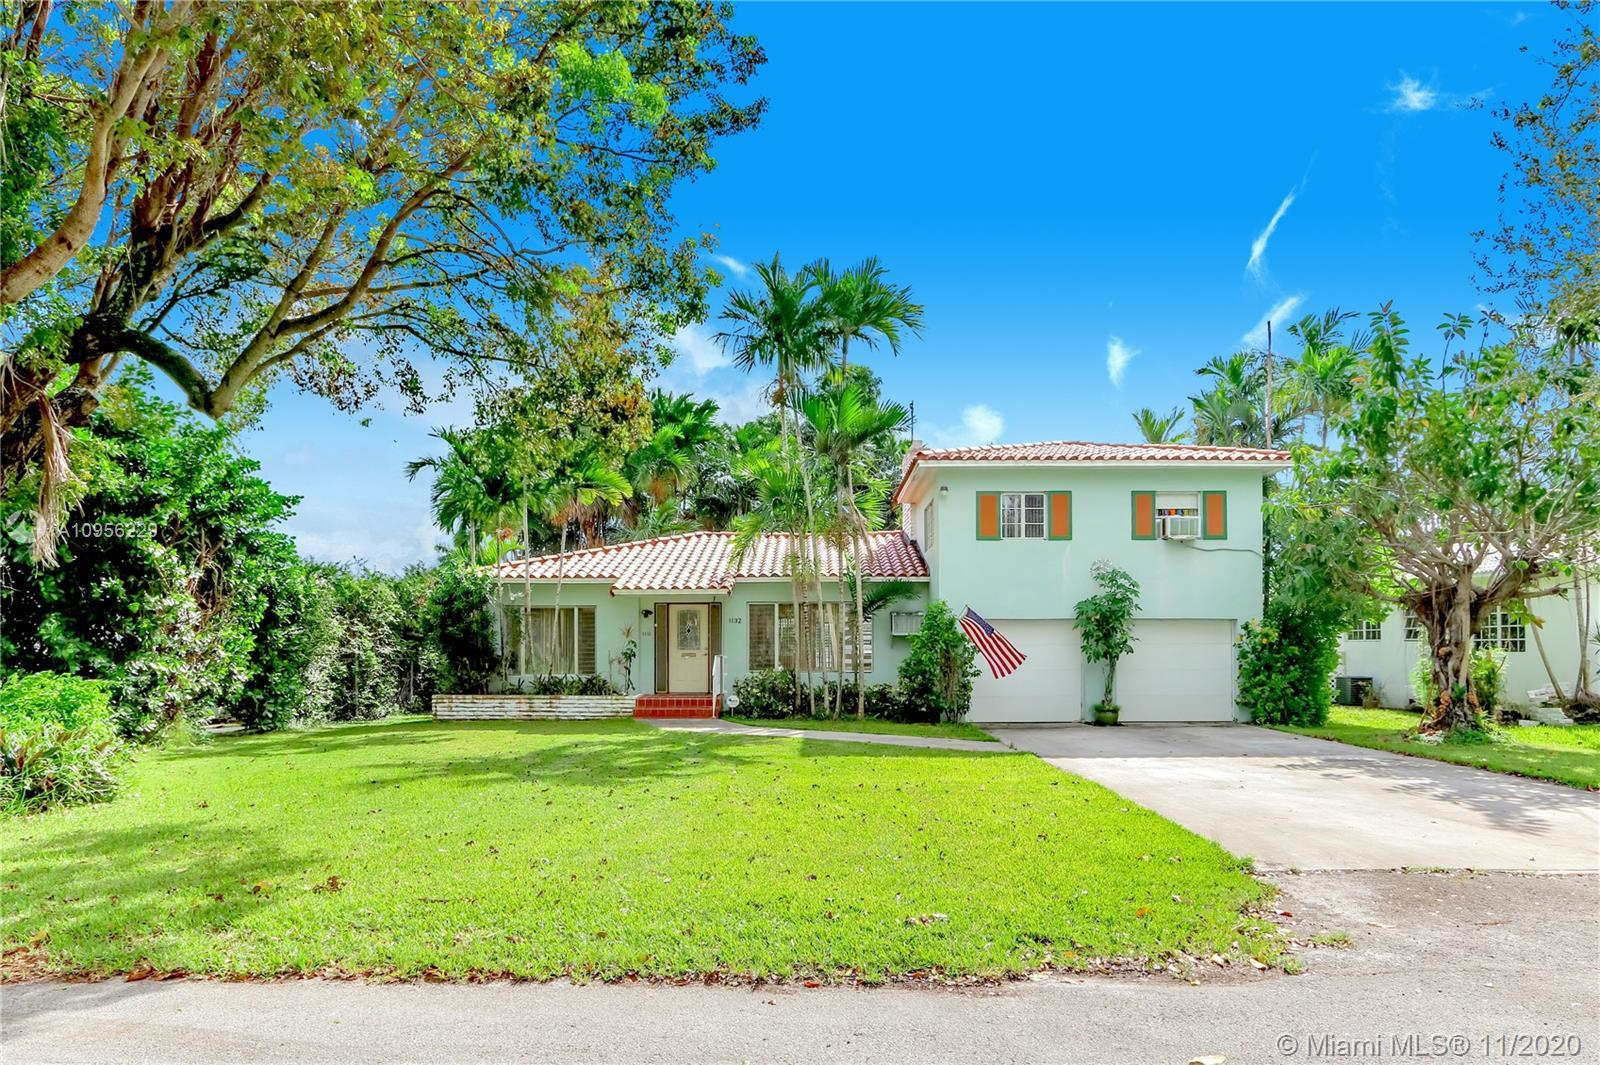 Charming 2 story home on a quiet tree-lined street east of Biscayne Blvd. in Miami Shores Village.